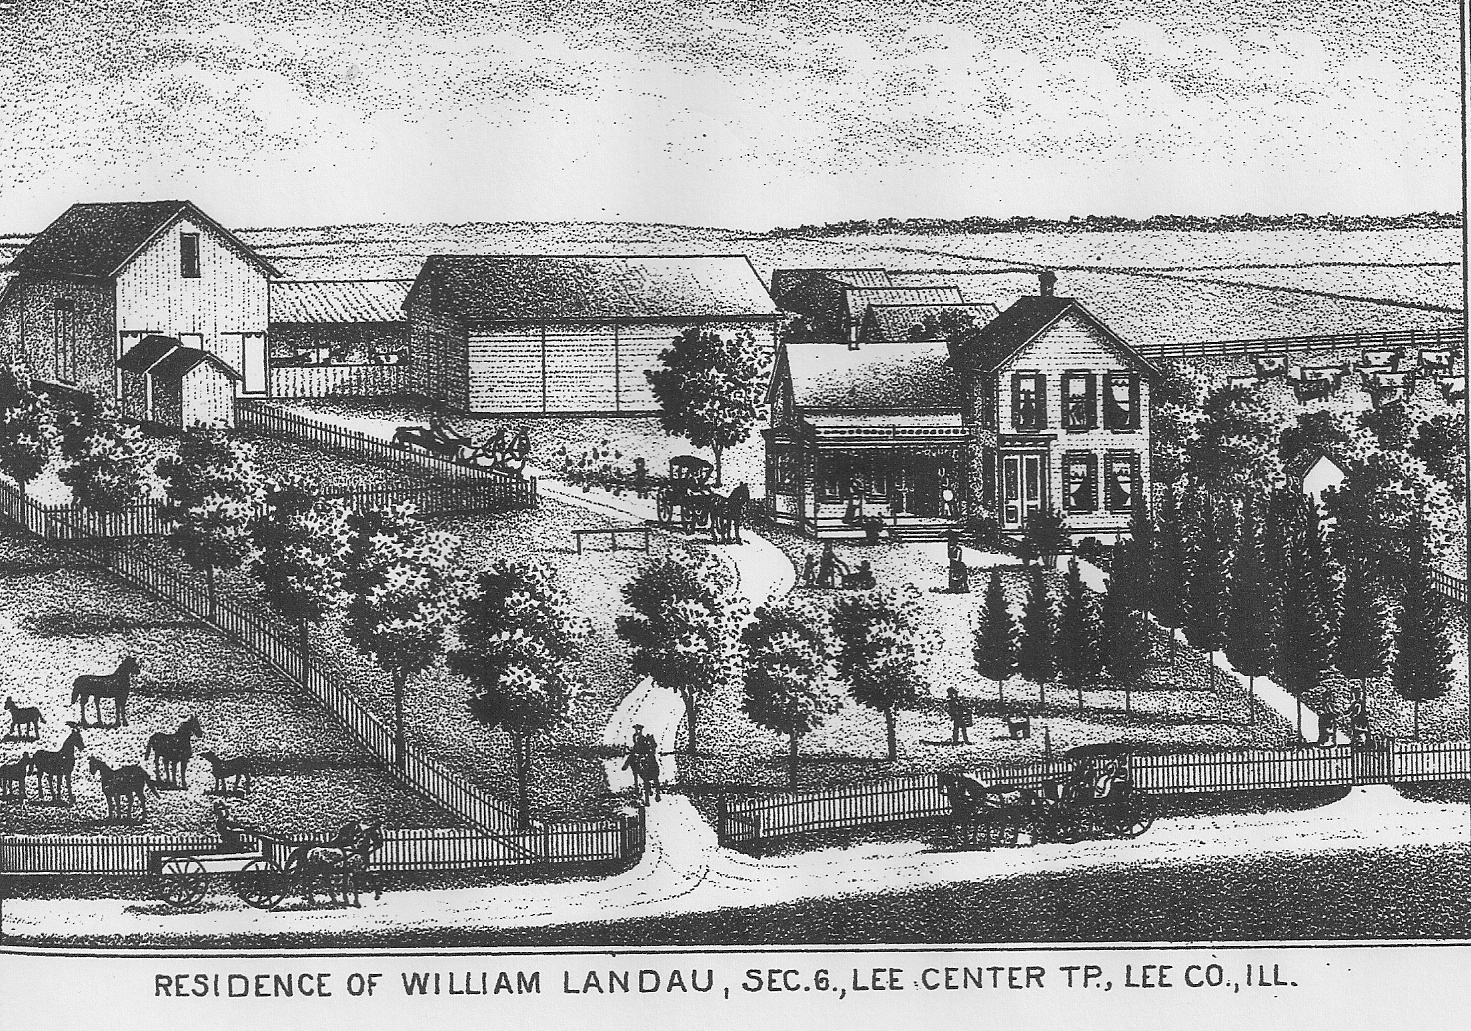 Illinois lee county lee - The Portrait And Biographical Record Of Lee County Illinois Published In 1892 Includes This Sketch Of The Landau Farm Click On Image To Enlarge It